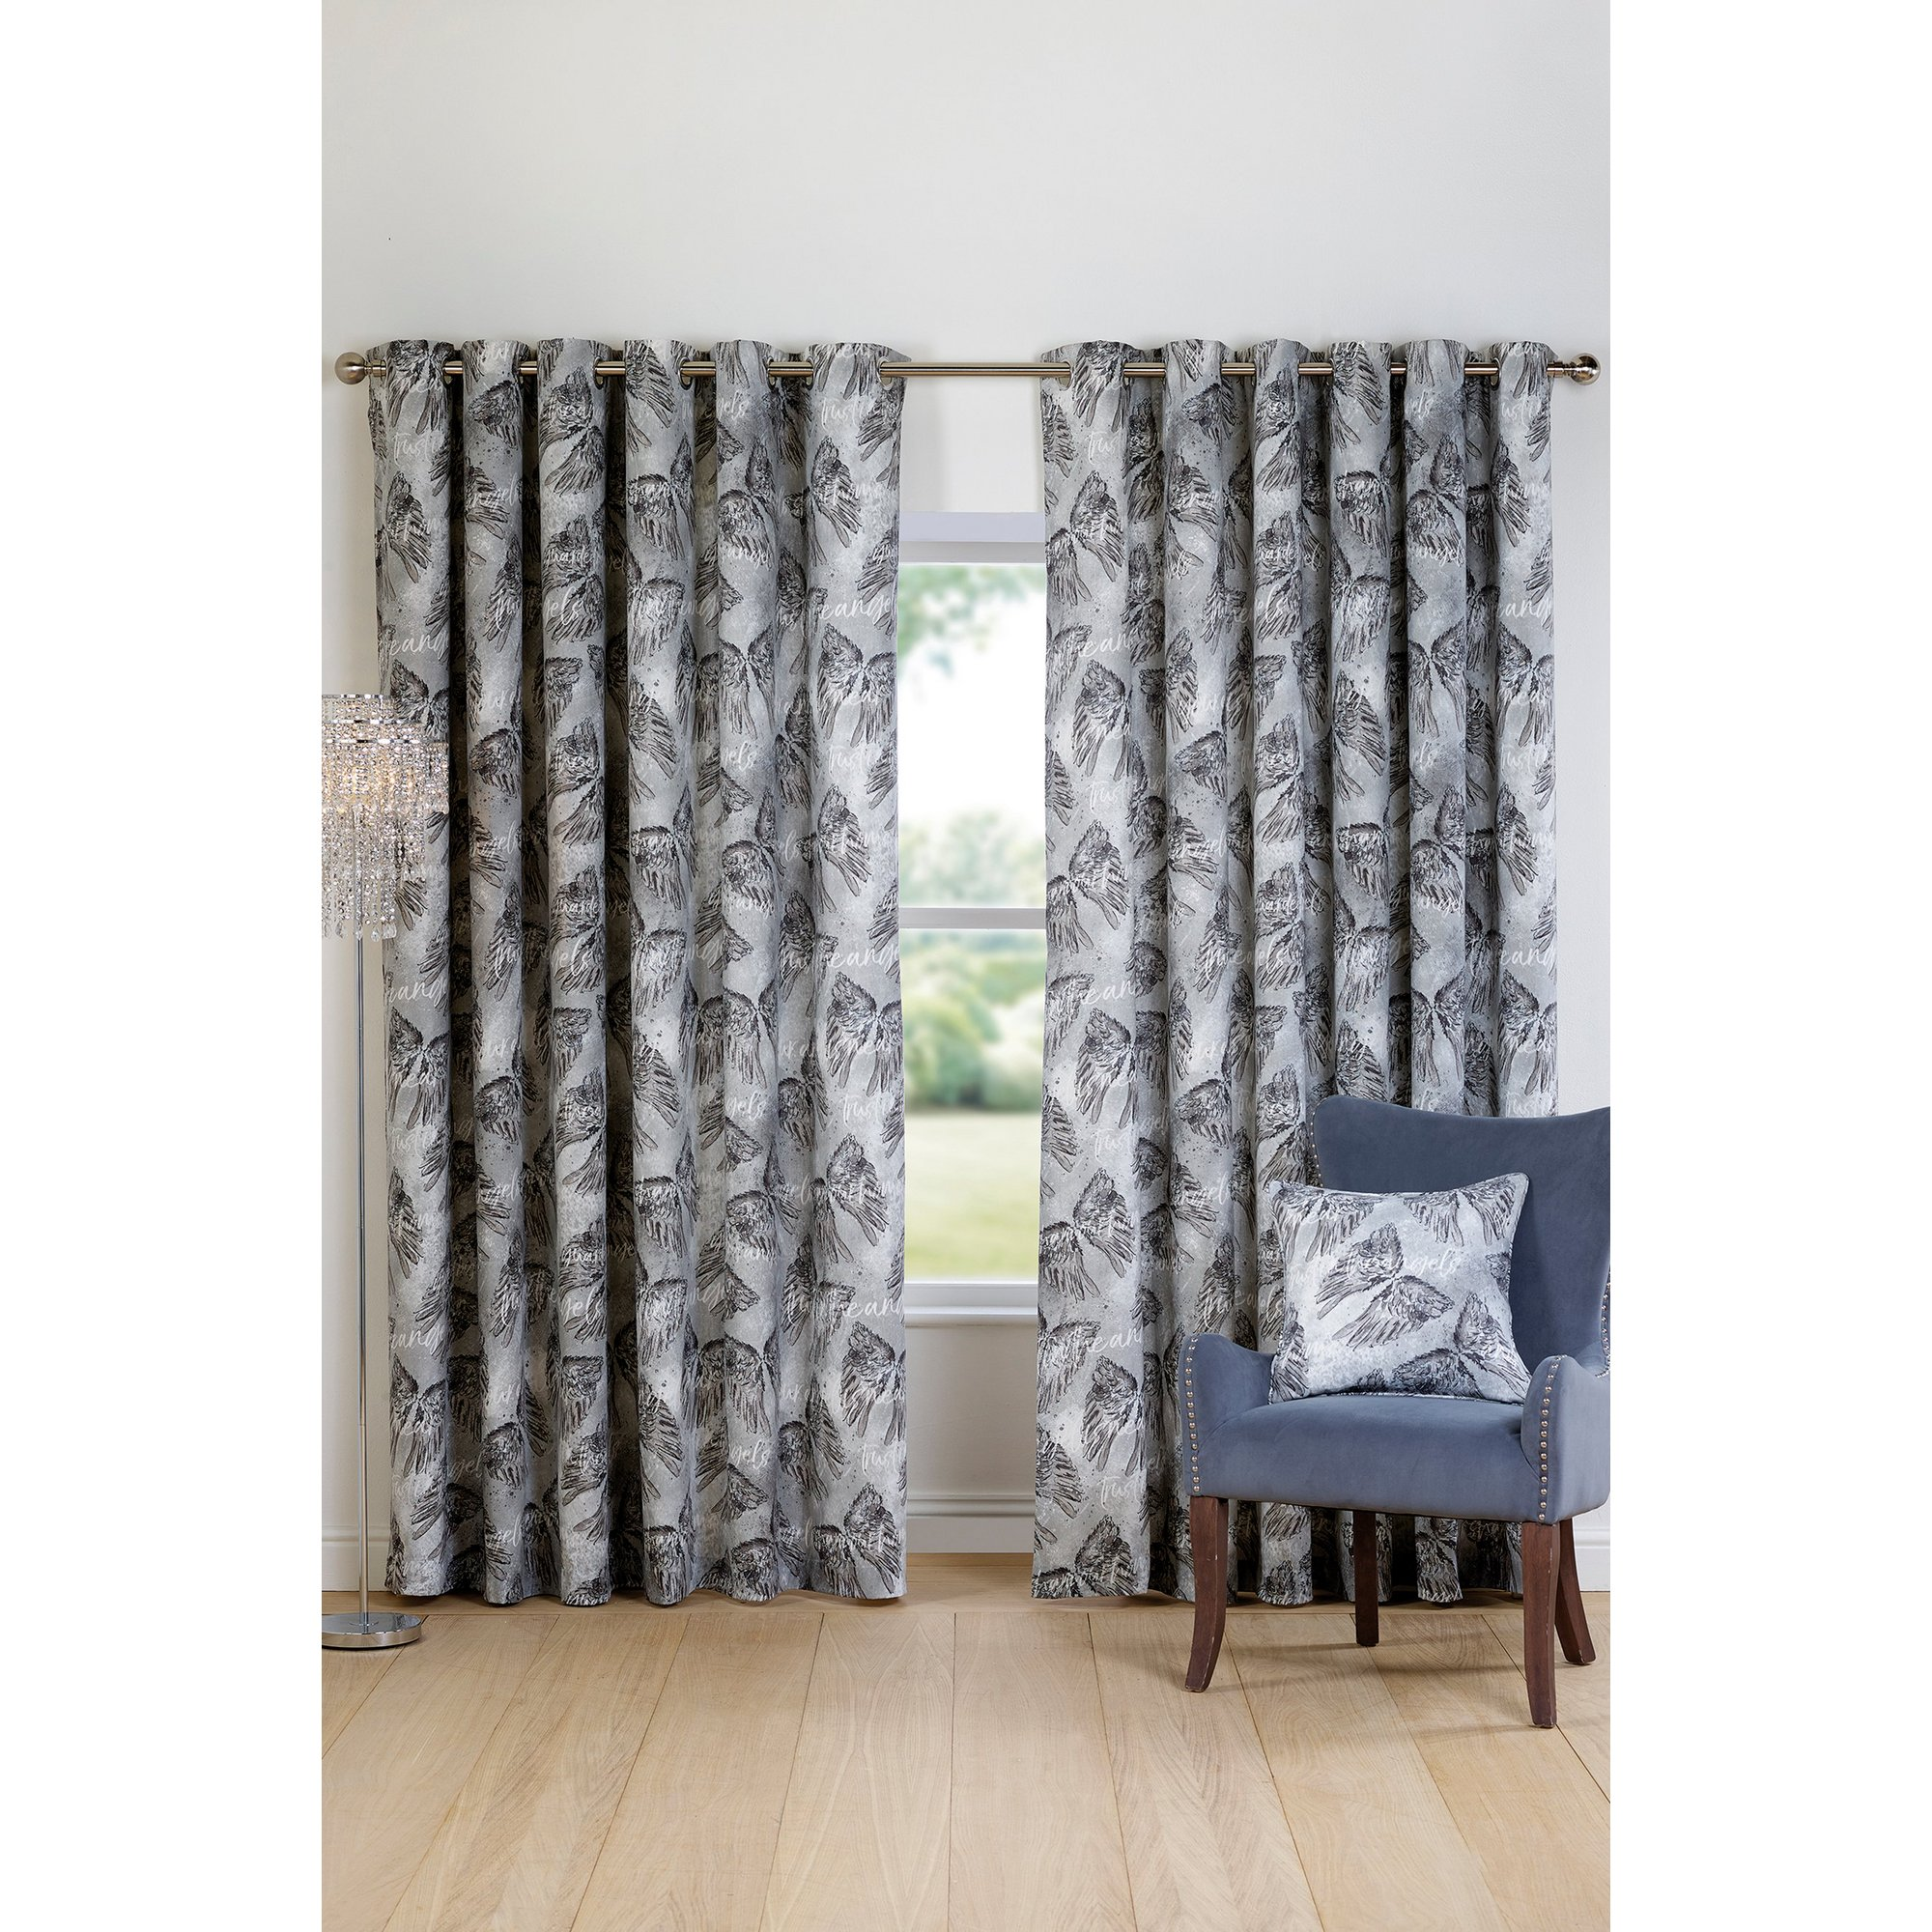 Image of Angel Eyelet Lined Curtains